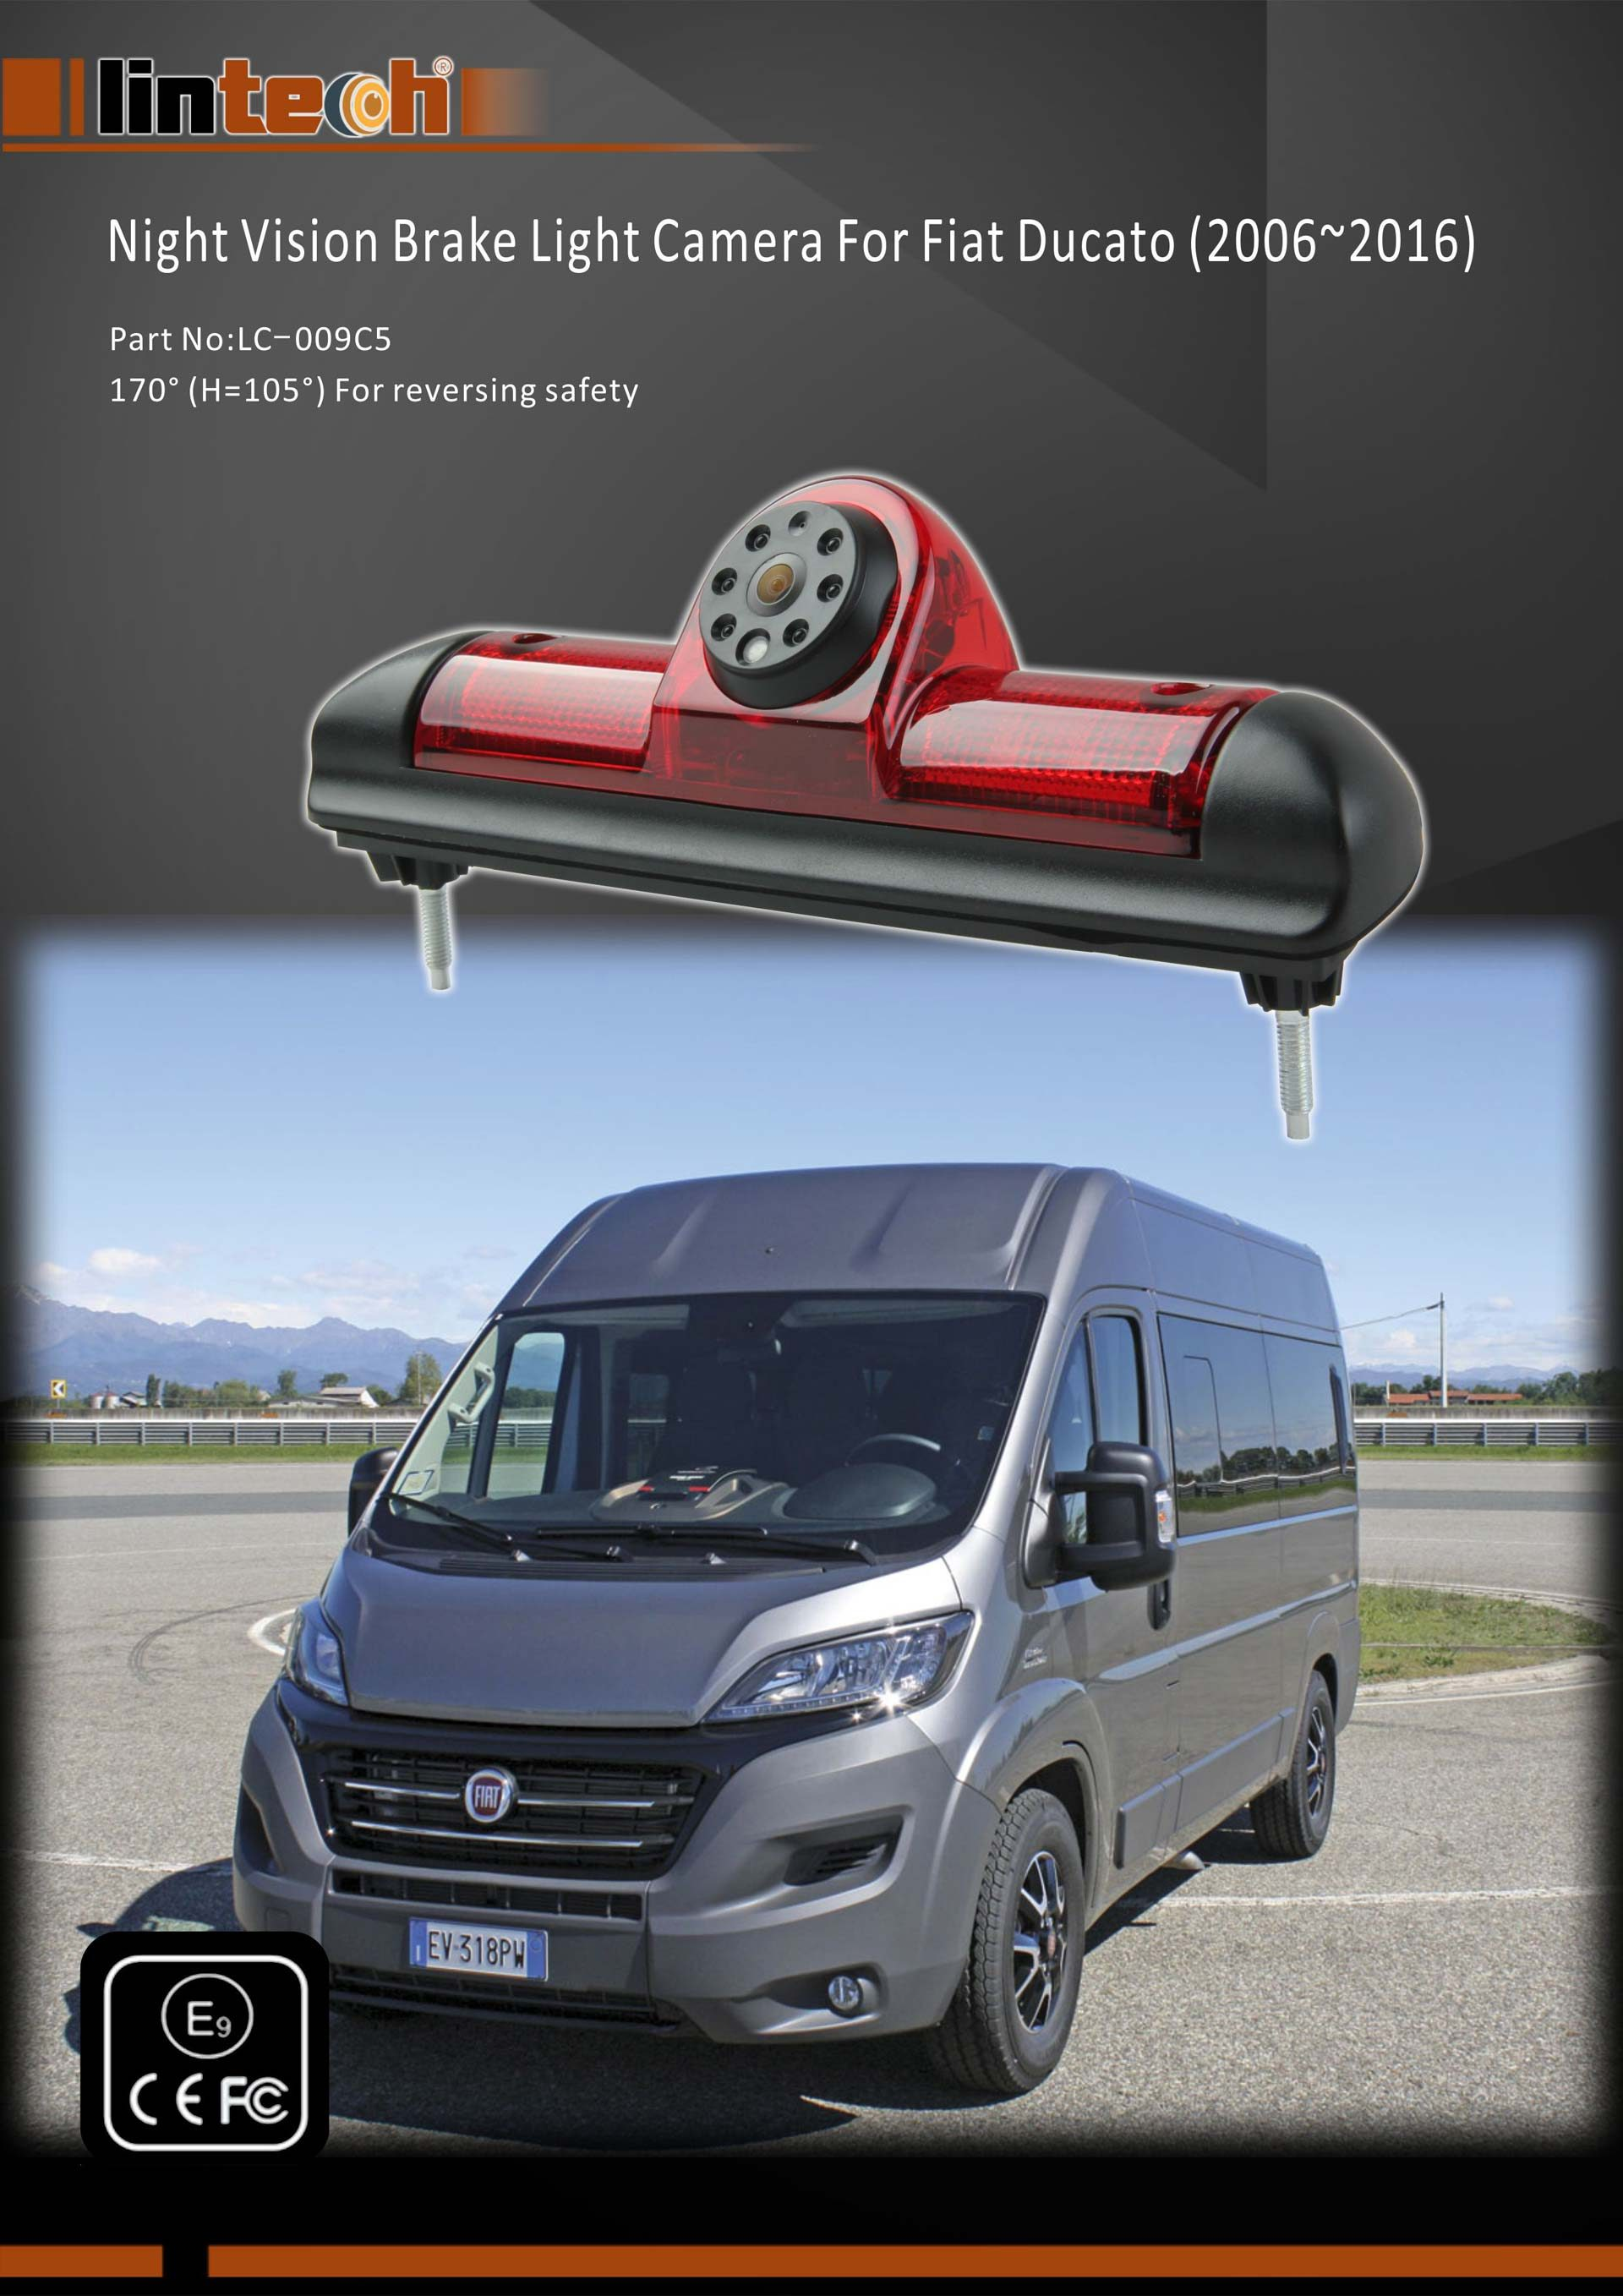 1. Brake Light Camera for Fiat Ducato